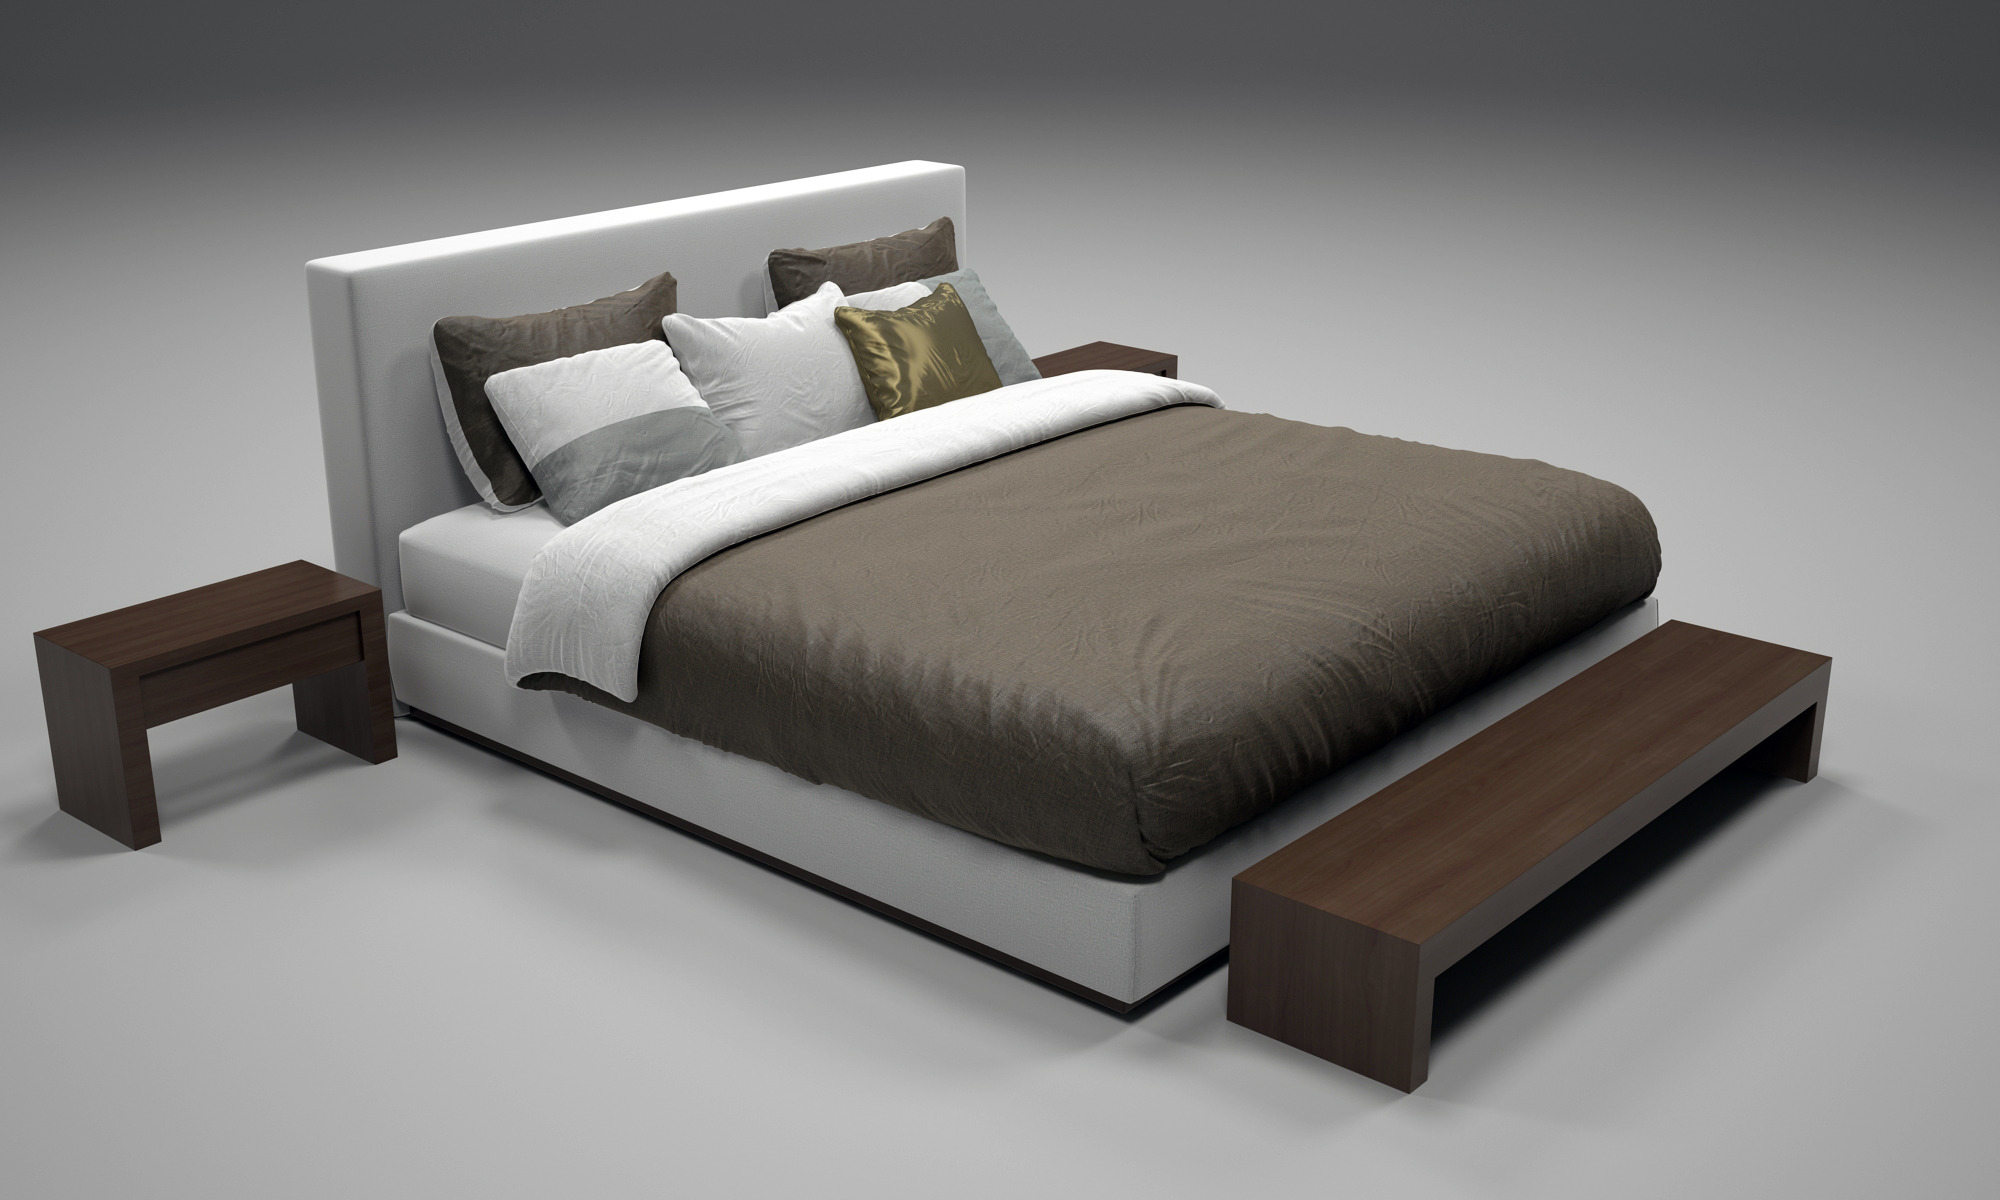 Realistic bed model with materials 2 by numetal 3docean for 3ds max bed model